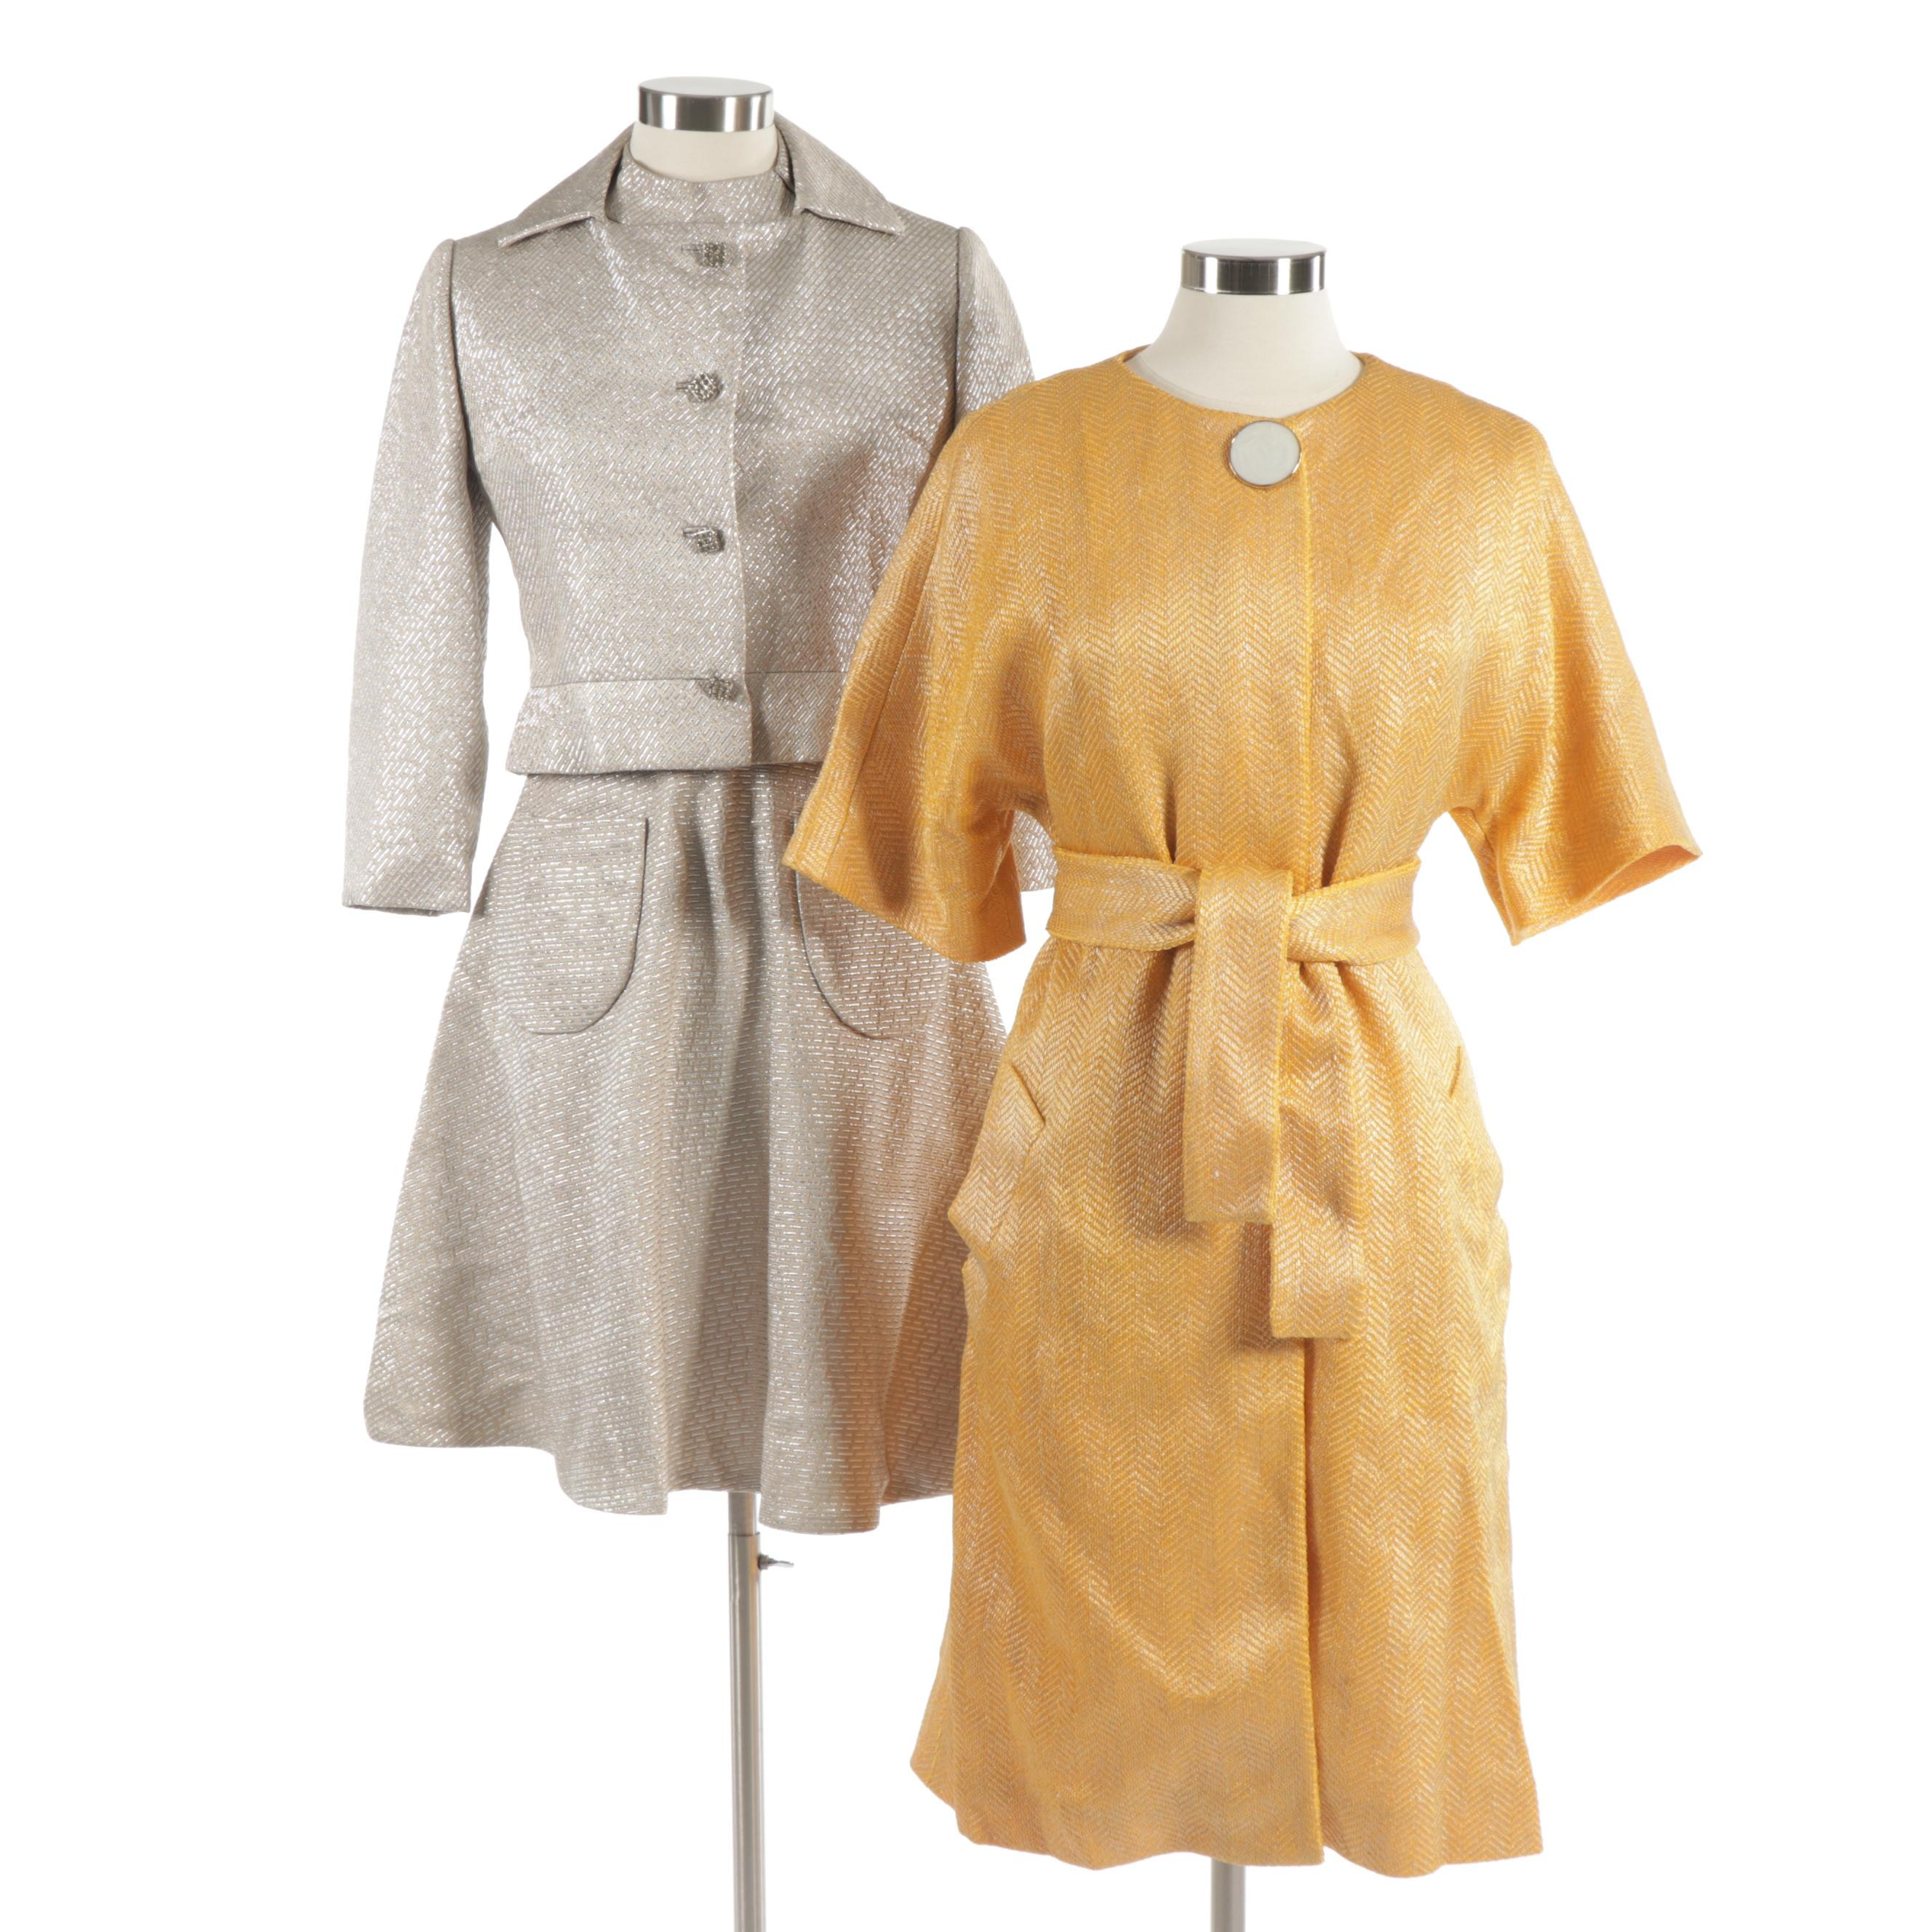 Brocaded Dress with Jacket and Coat, Mid-20th Century Vintage